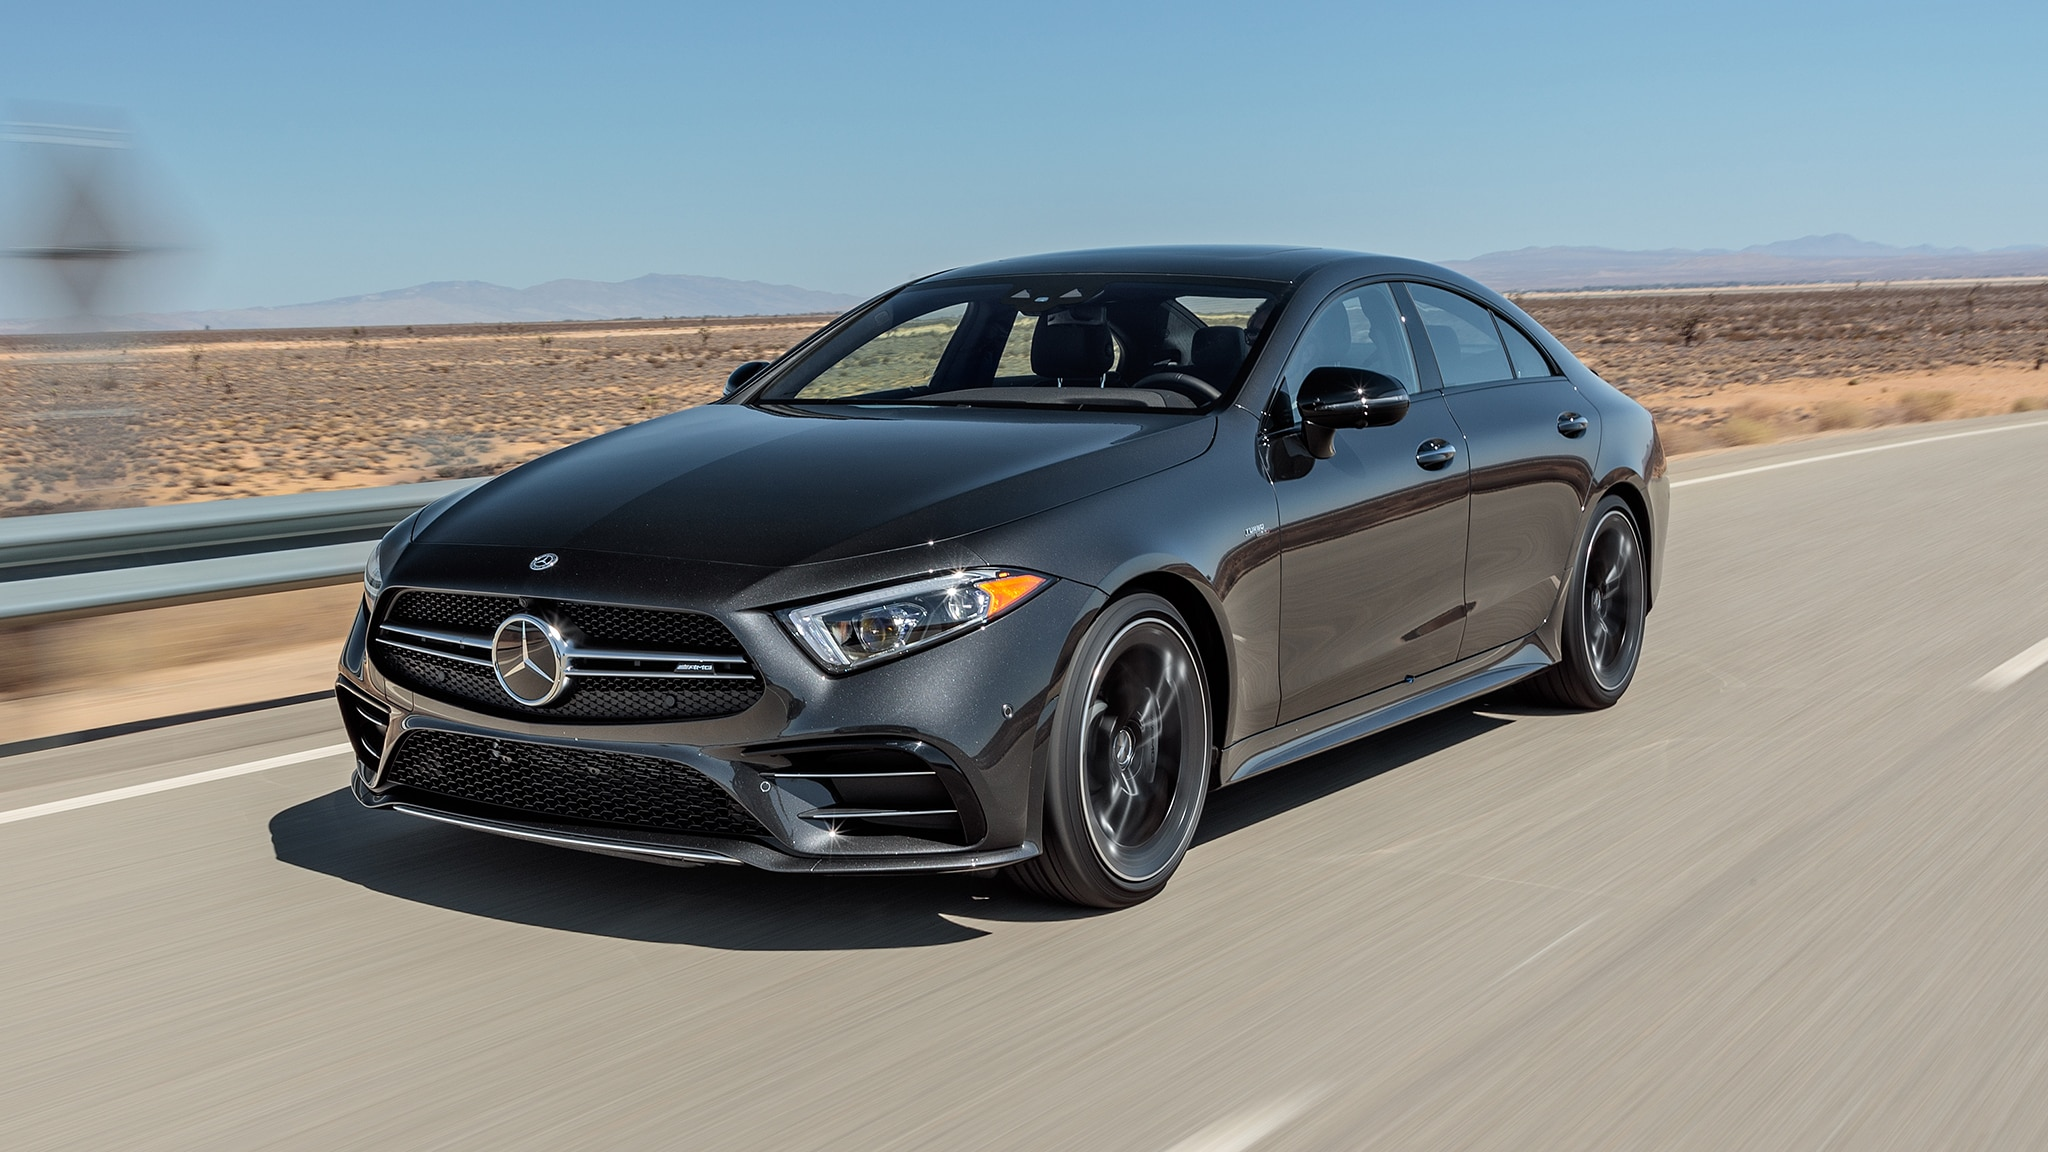 2019 Mercedes AMG CLS Class 53 Turbo 4Matic Front Three Quarter In Motion 1